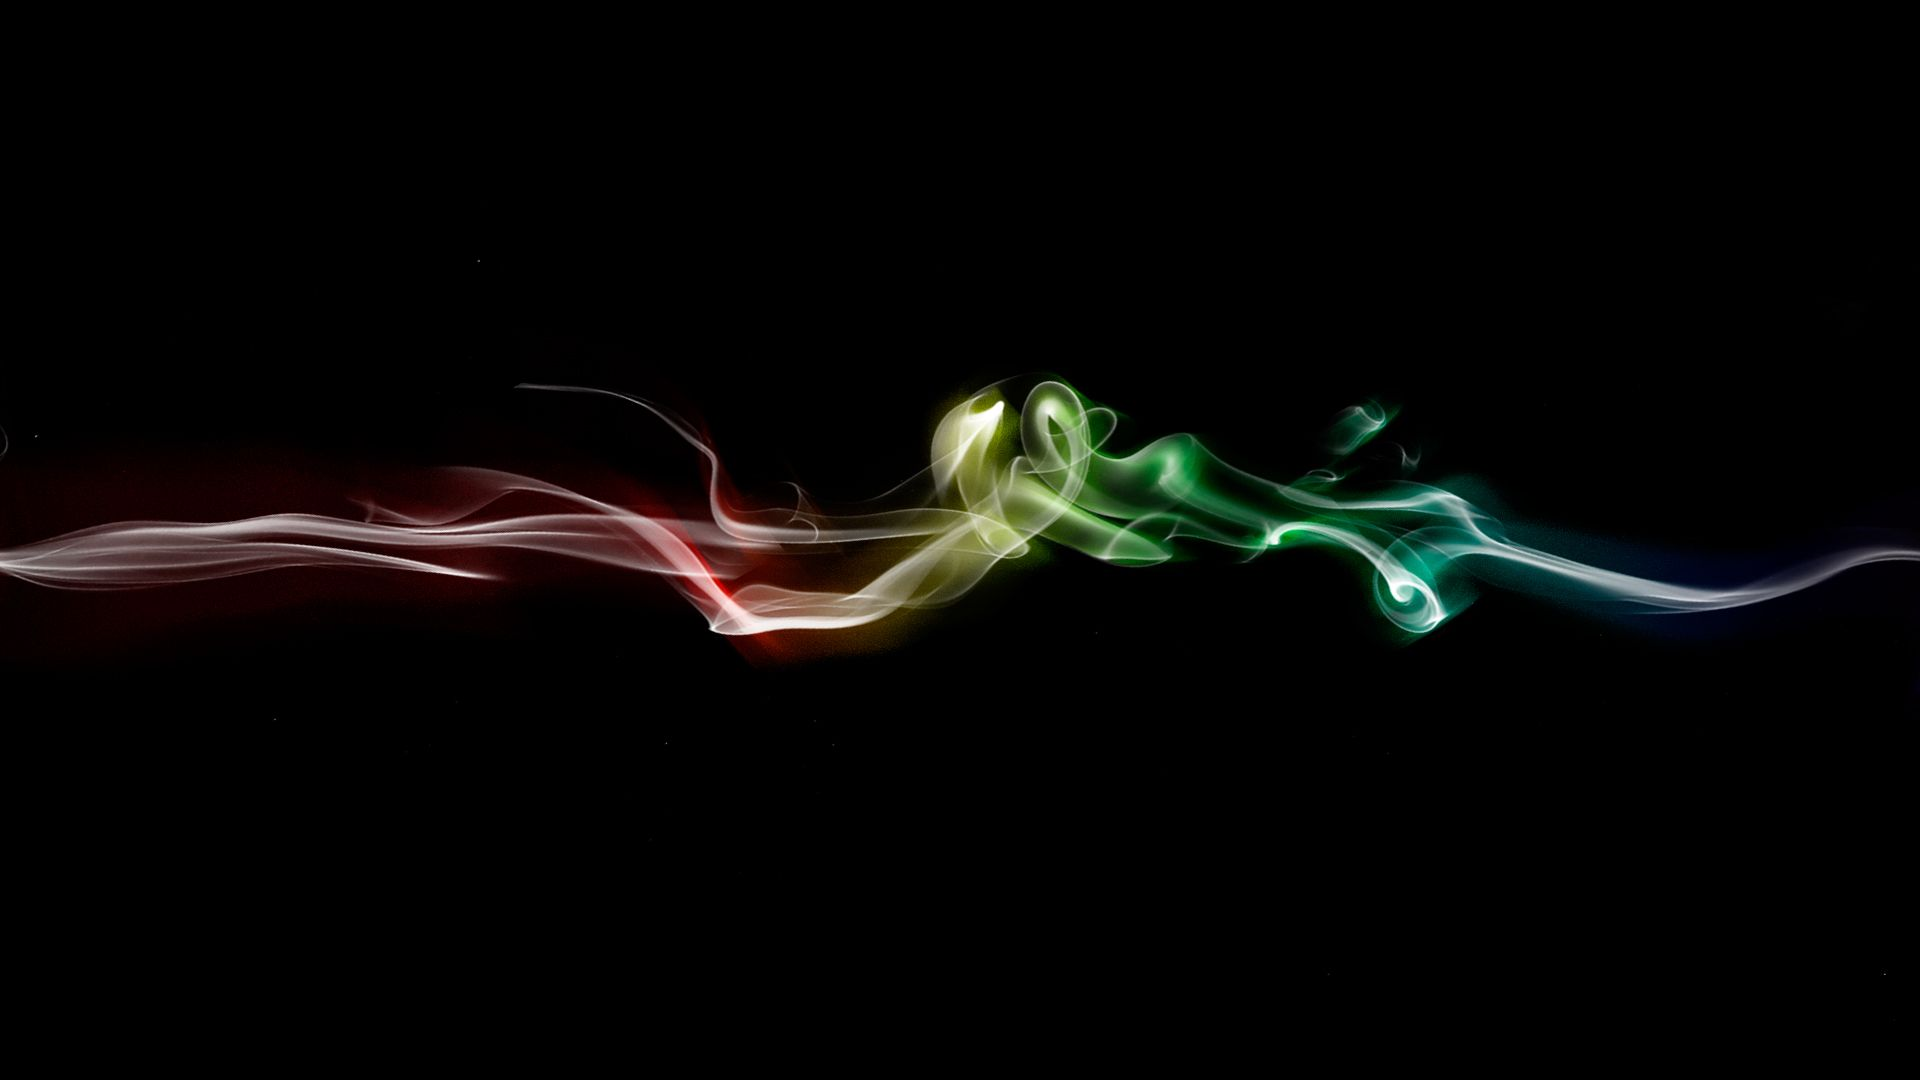 hd neon smoke wallpapers google search a cool picture